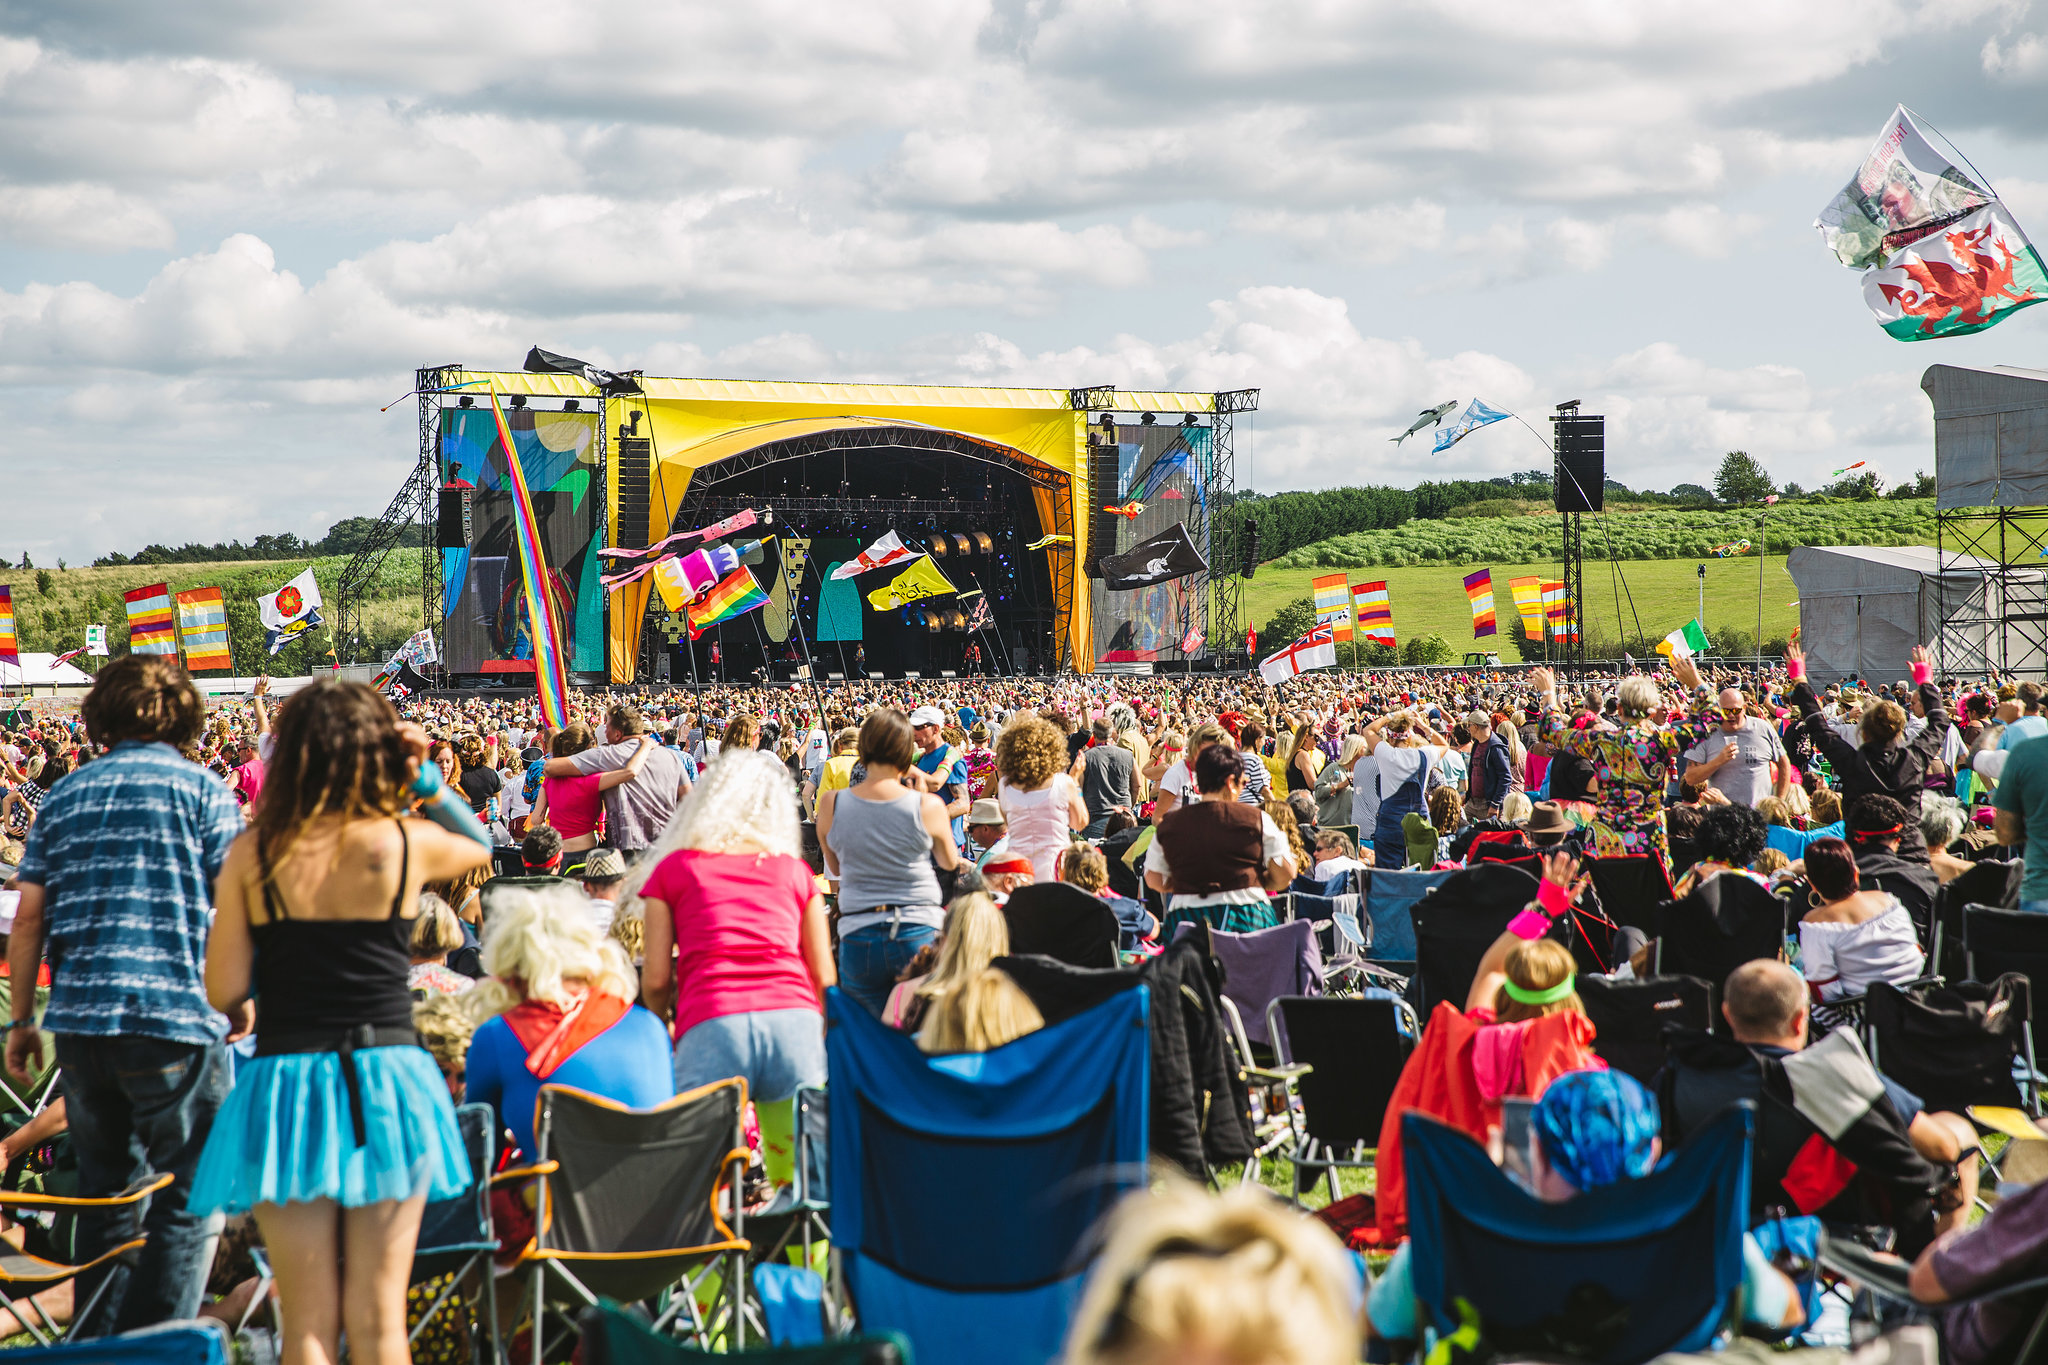 The Rewind Festival draws huge crowds to Scone Palace and there have been concerns that the traffic plans are a 'disaster waiting to happen'.